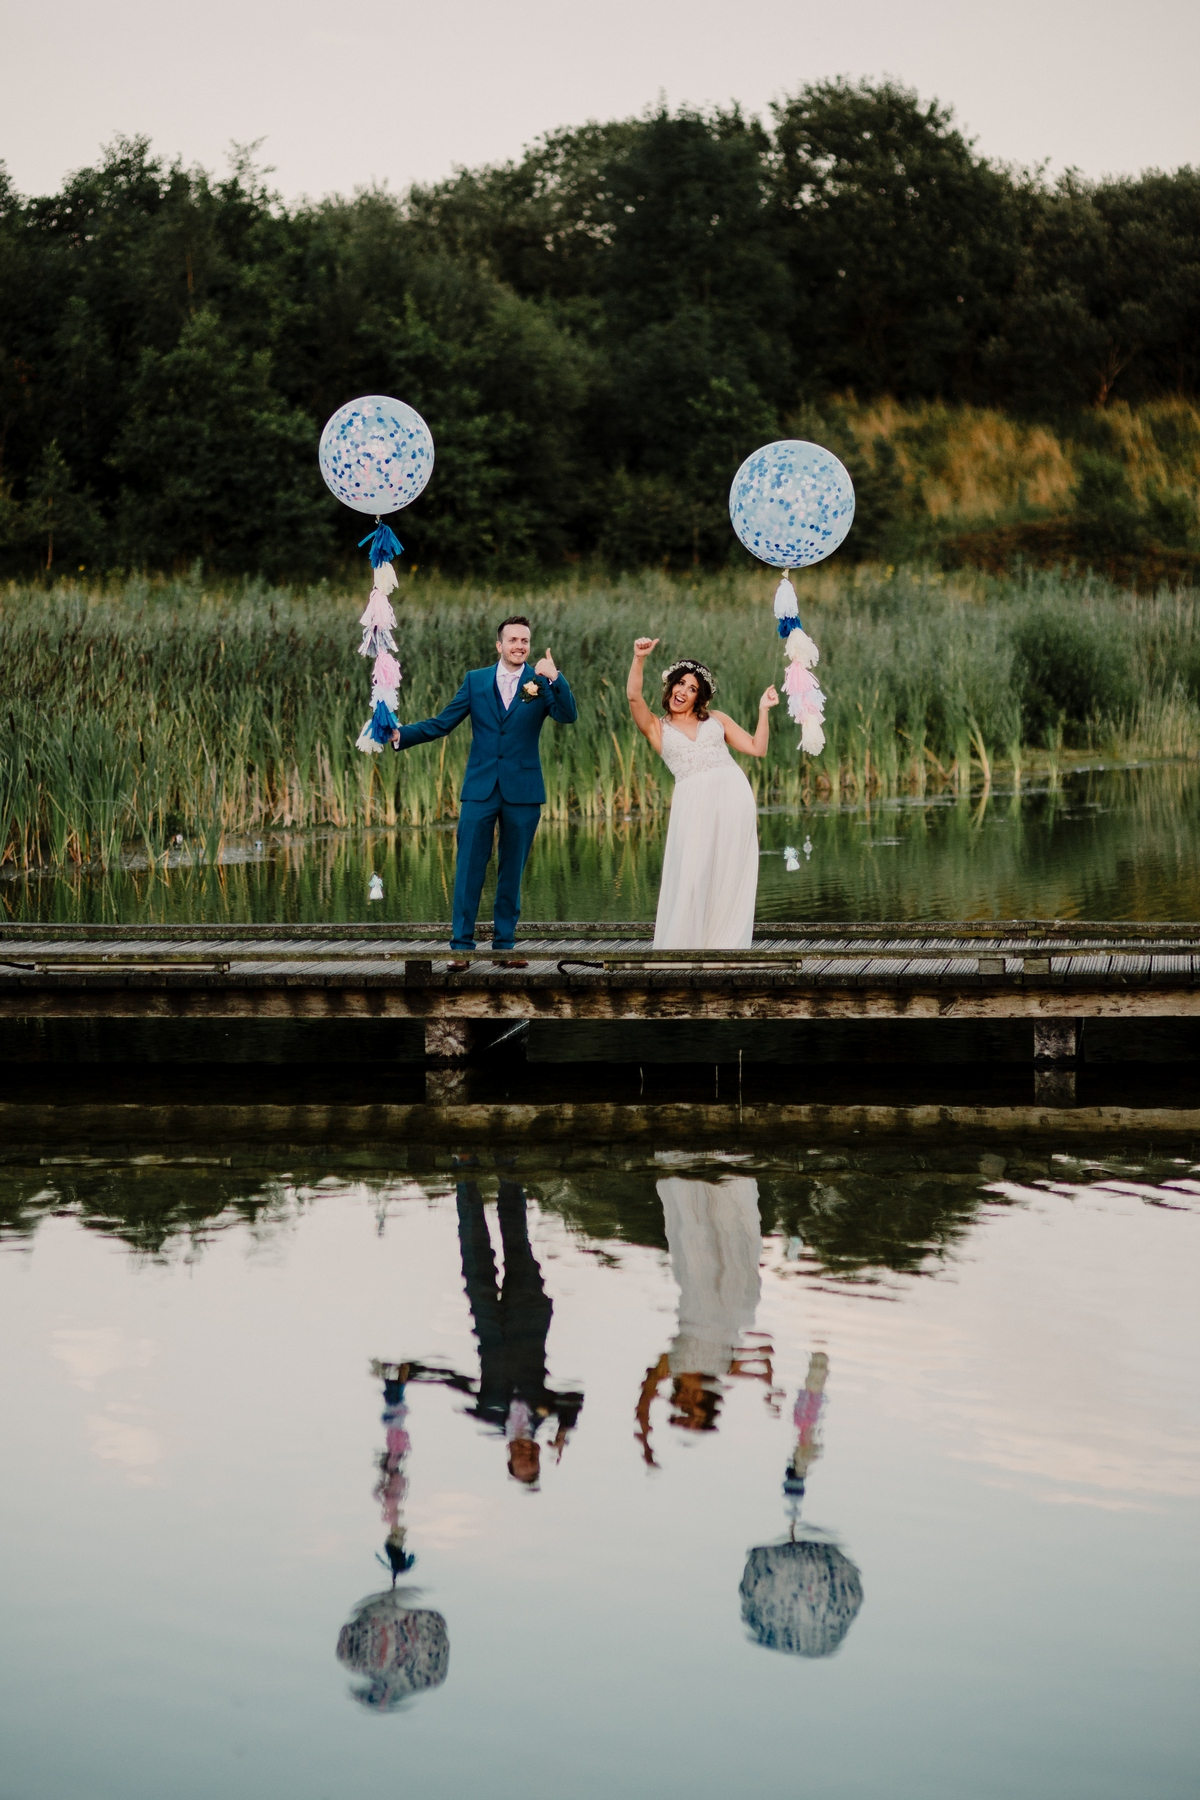 Mr & Mrs Unique, Brocklands Nature Reserve, Amy Faith Photography, Nature Reserve, Wildlife Trust, Merseyside, Rustic Wedding Decor, Pastels, Dusky Pink Bridesmaid Dresses, Lihi Hod, Foliage Hoops, Browns Brides, Traditional Ceremony, Church Wedding, Flower Crown, Woodland Wedding, Pink Roses, UK Wedding, Live Music, Bohemian Wedding Dress, Boho Wedding, Rustic Wedding